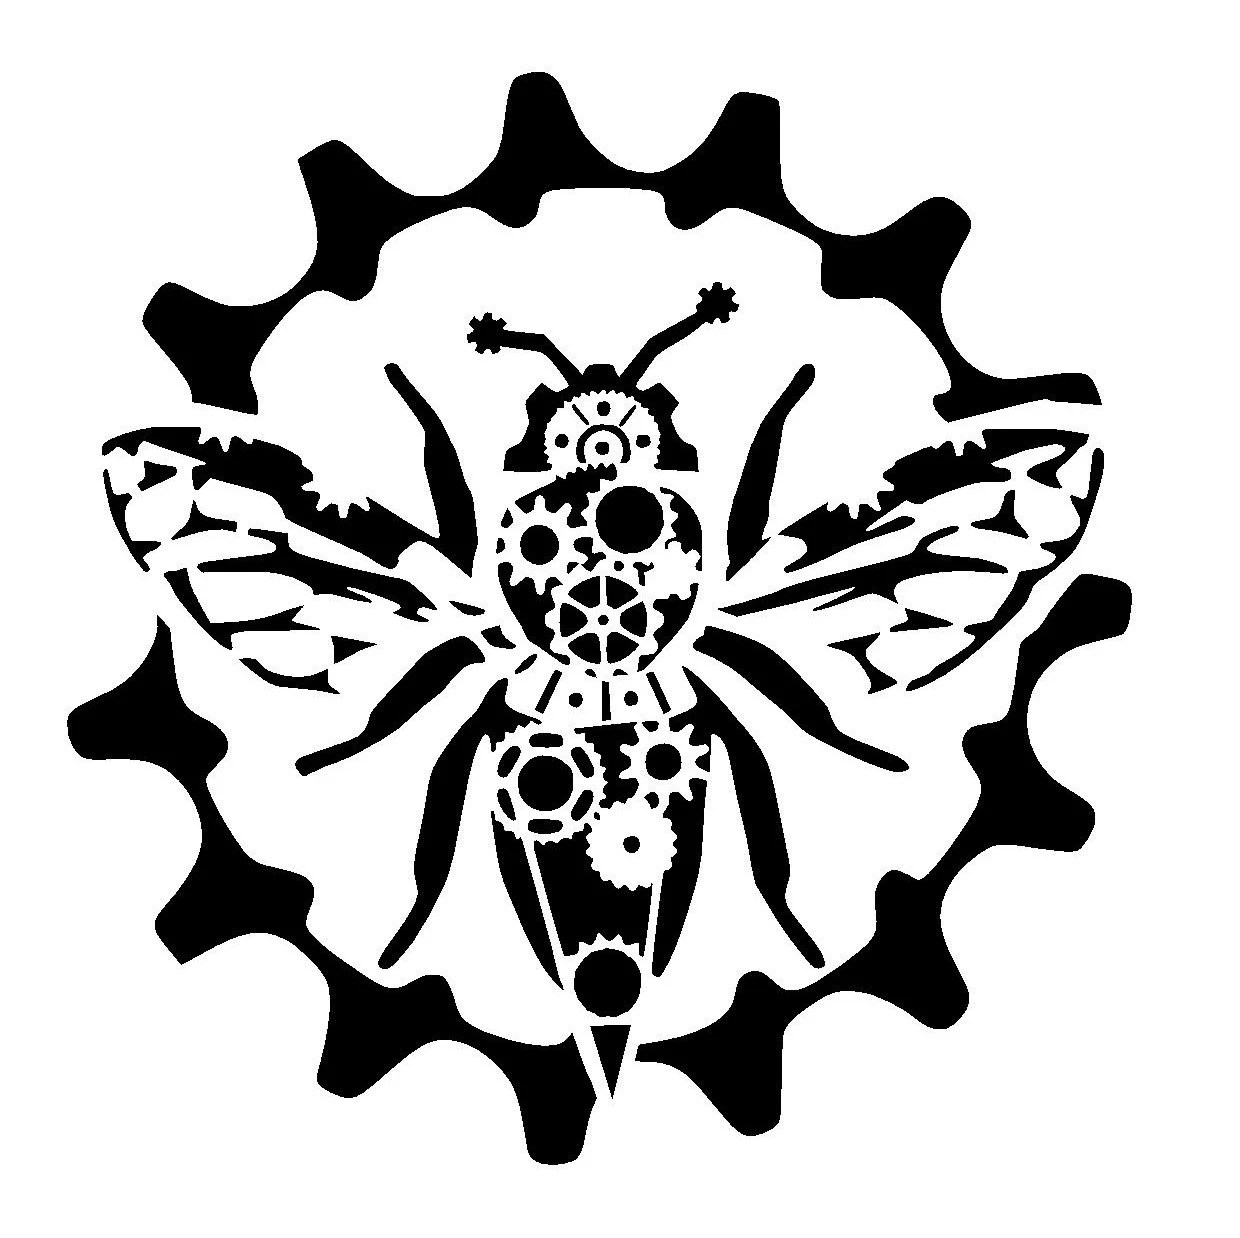 6 6 Steampunk Cogs Bumble Bee Stencil